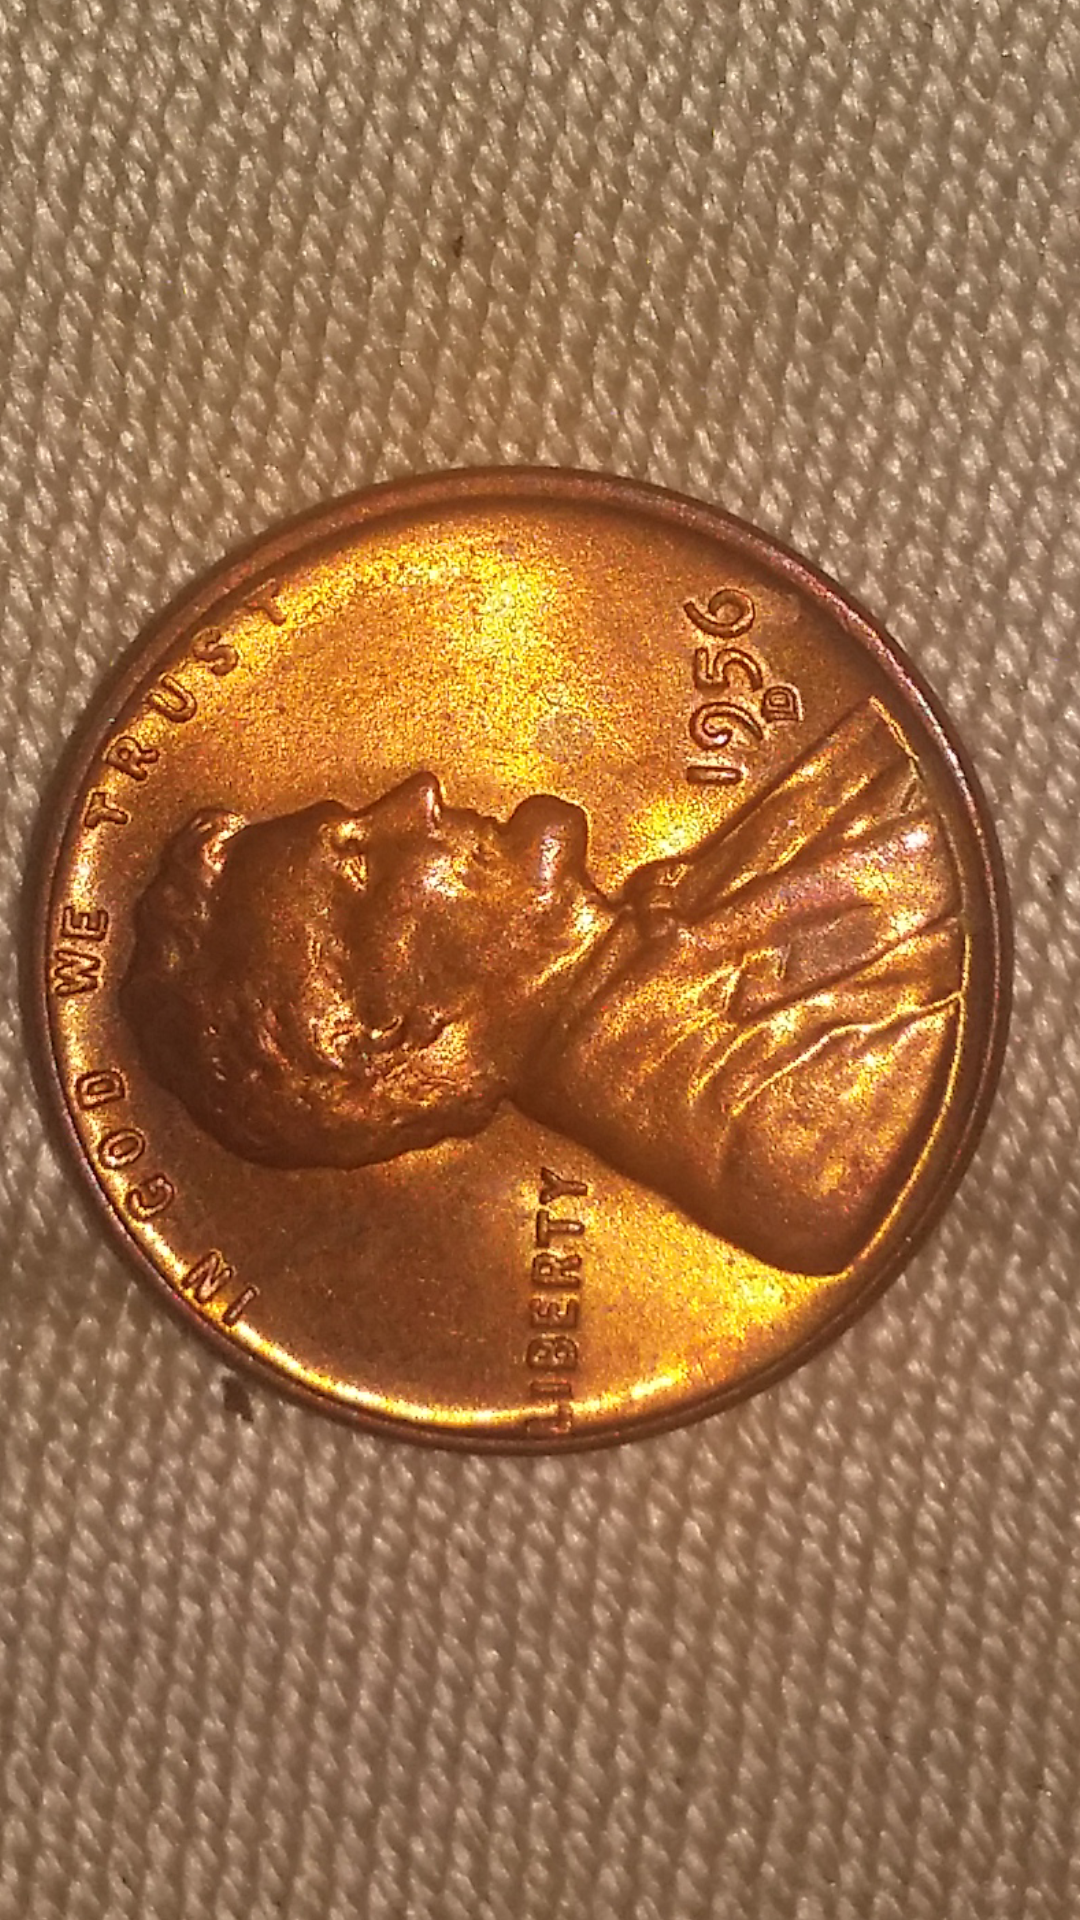 How much copper is in a penny?